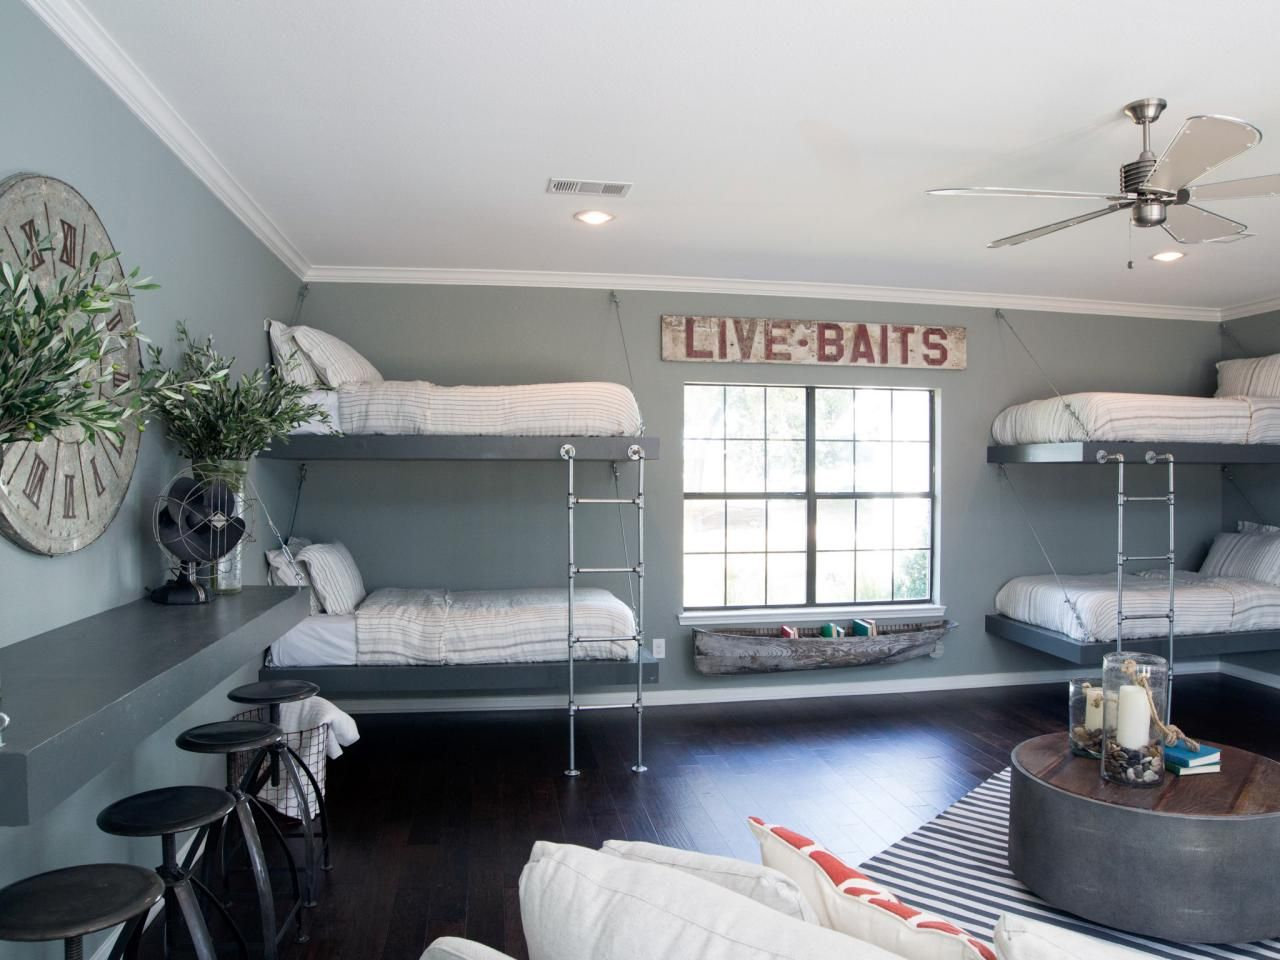 Kids 39 bunk bed and bunkroom design ideas joanna gaines for Mattress in living room ideas